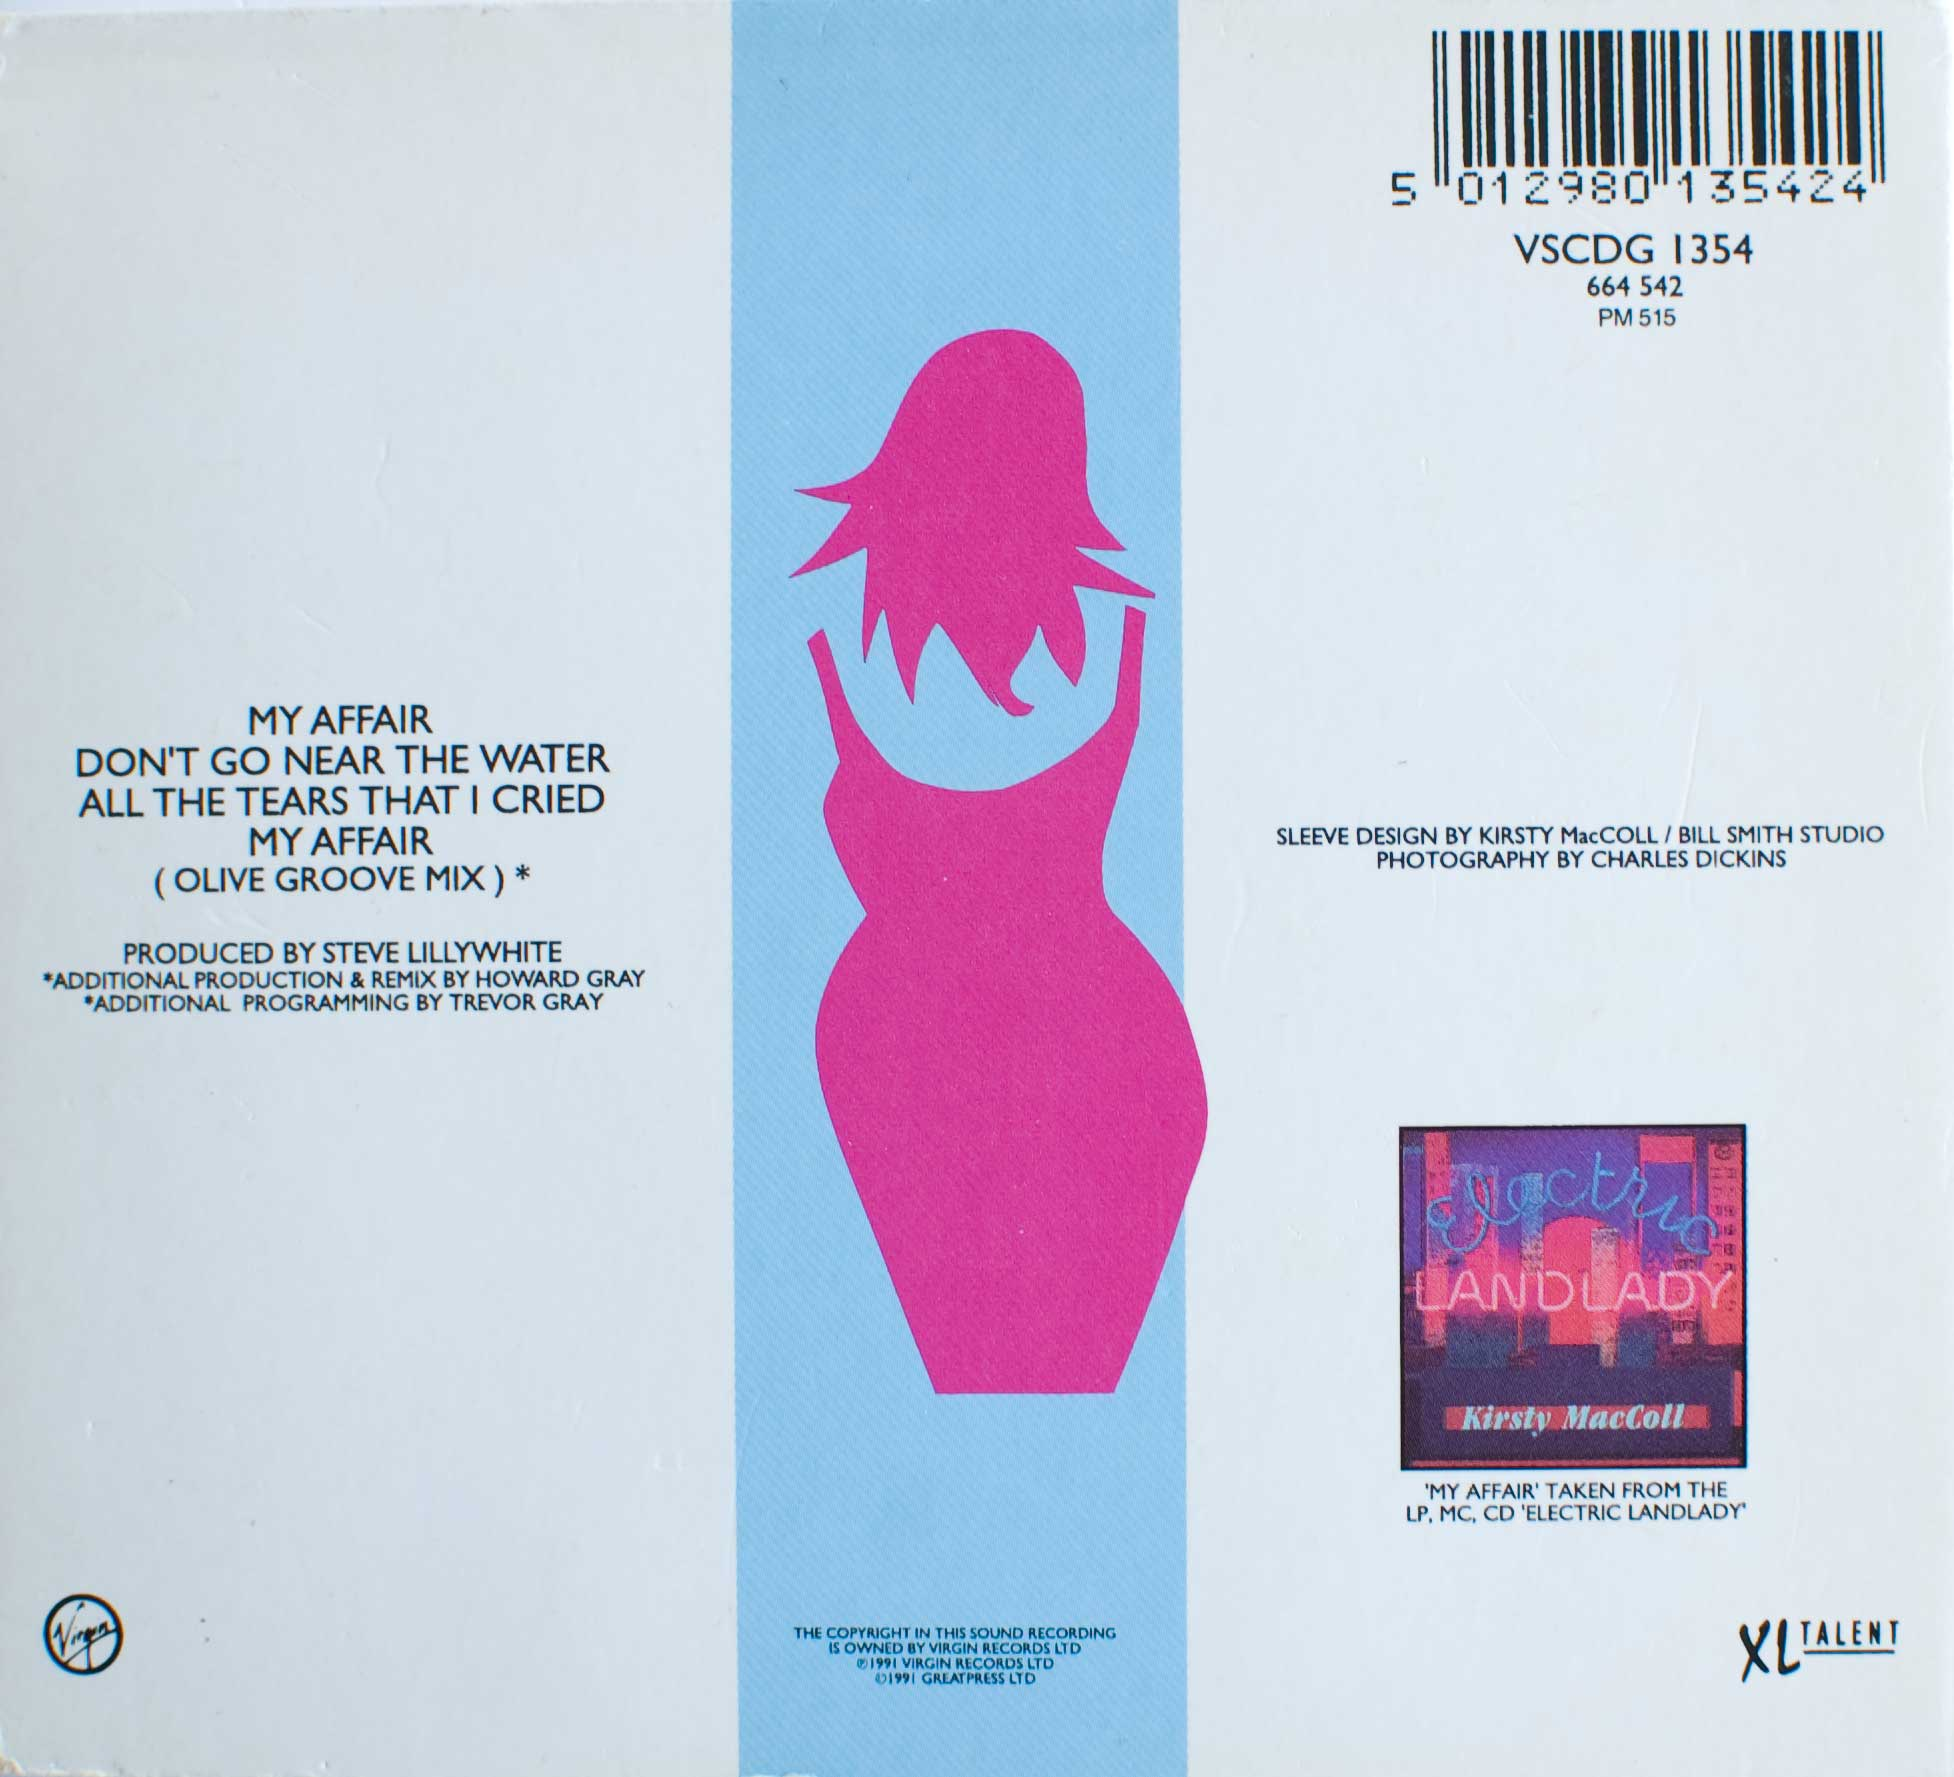 My Affair (CD single) back cover